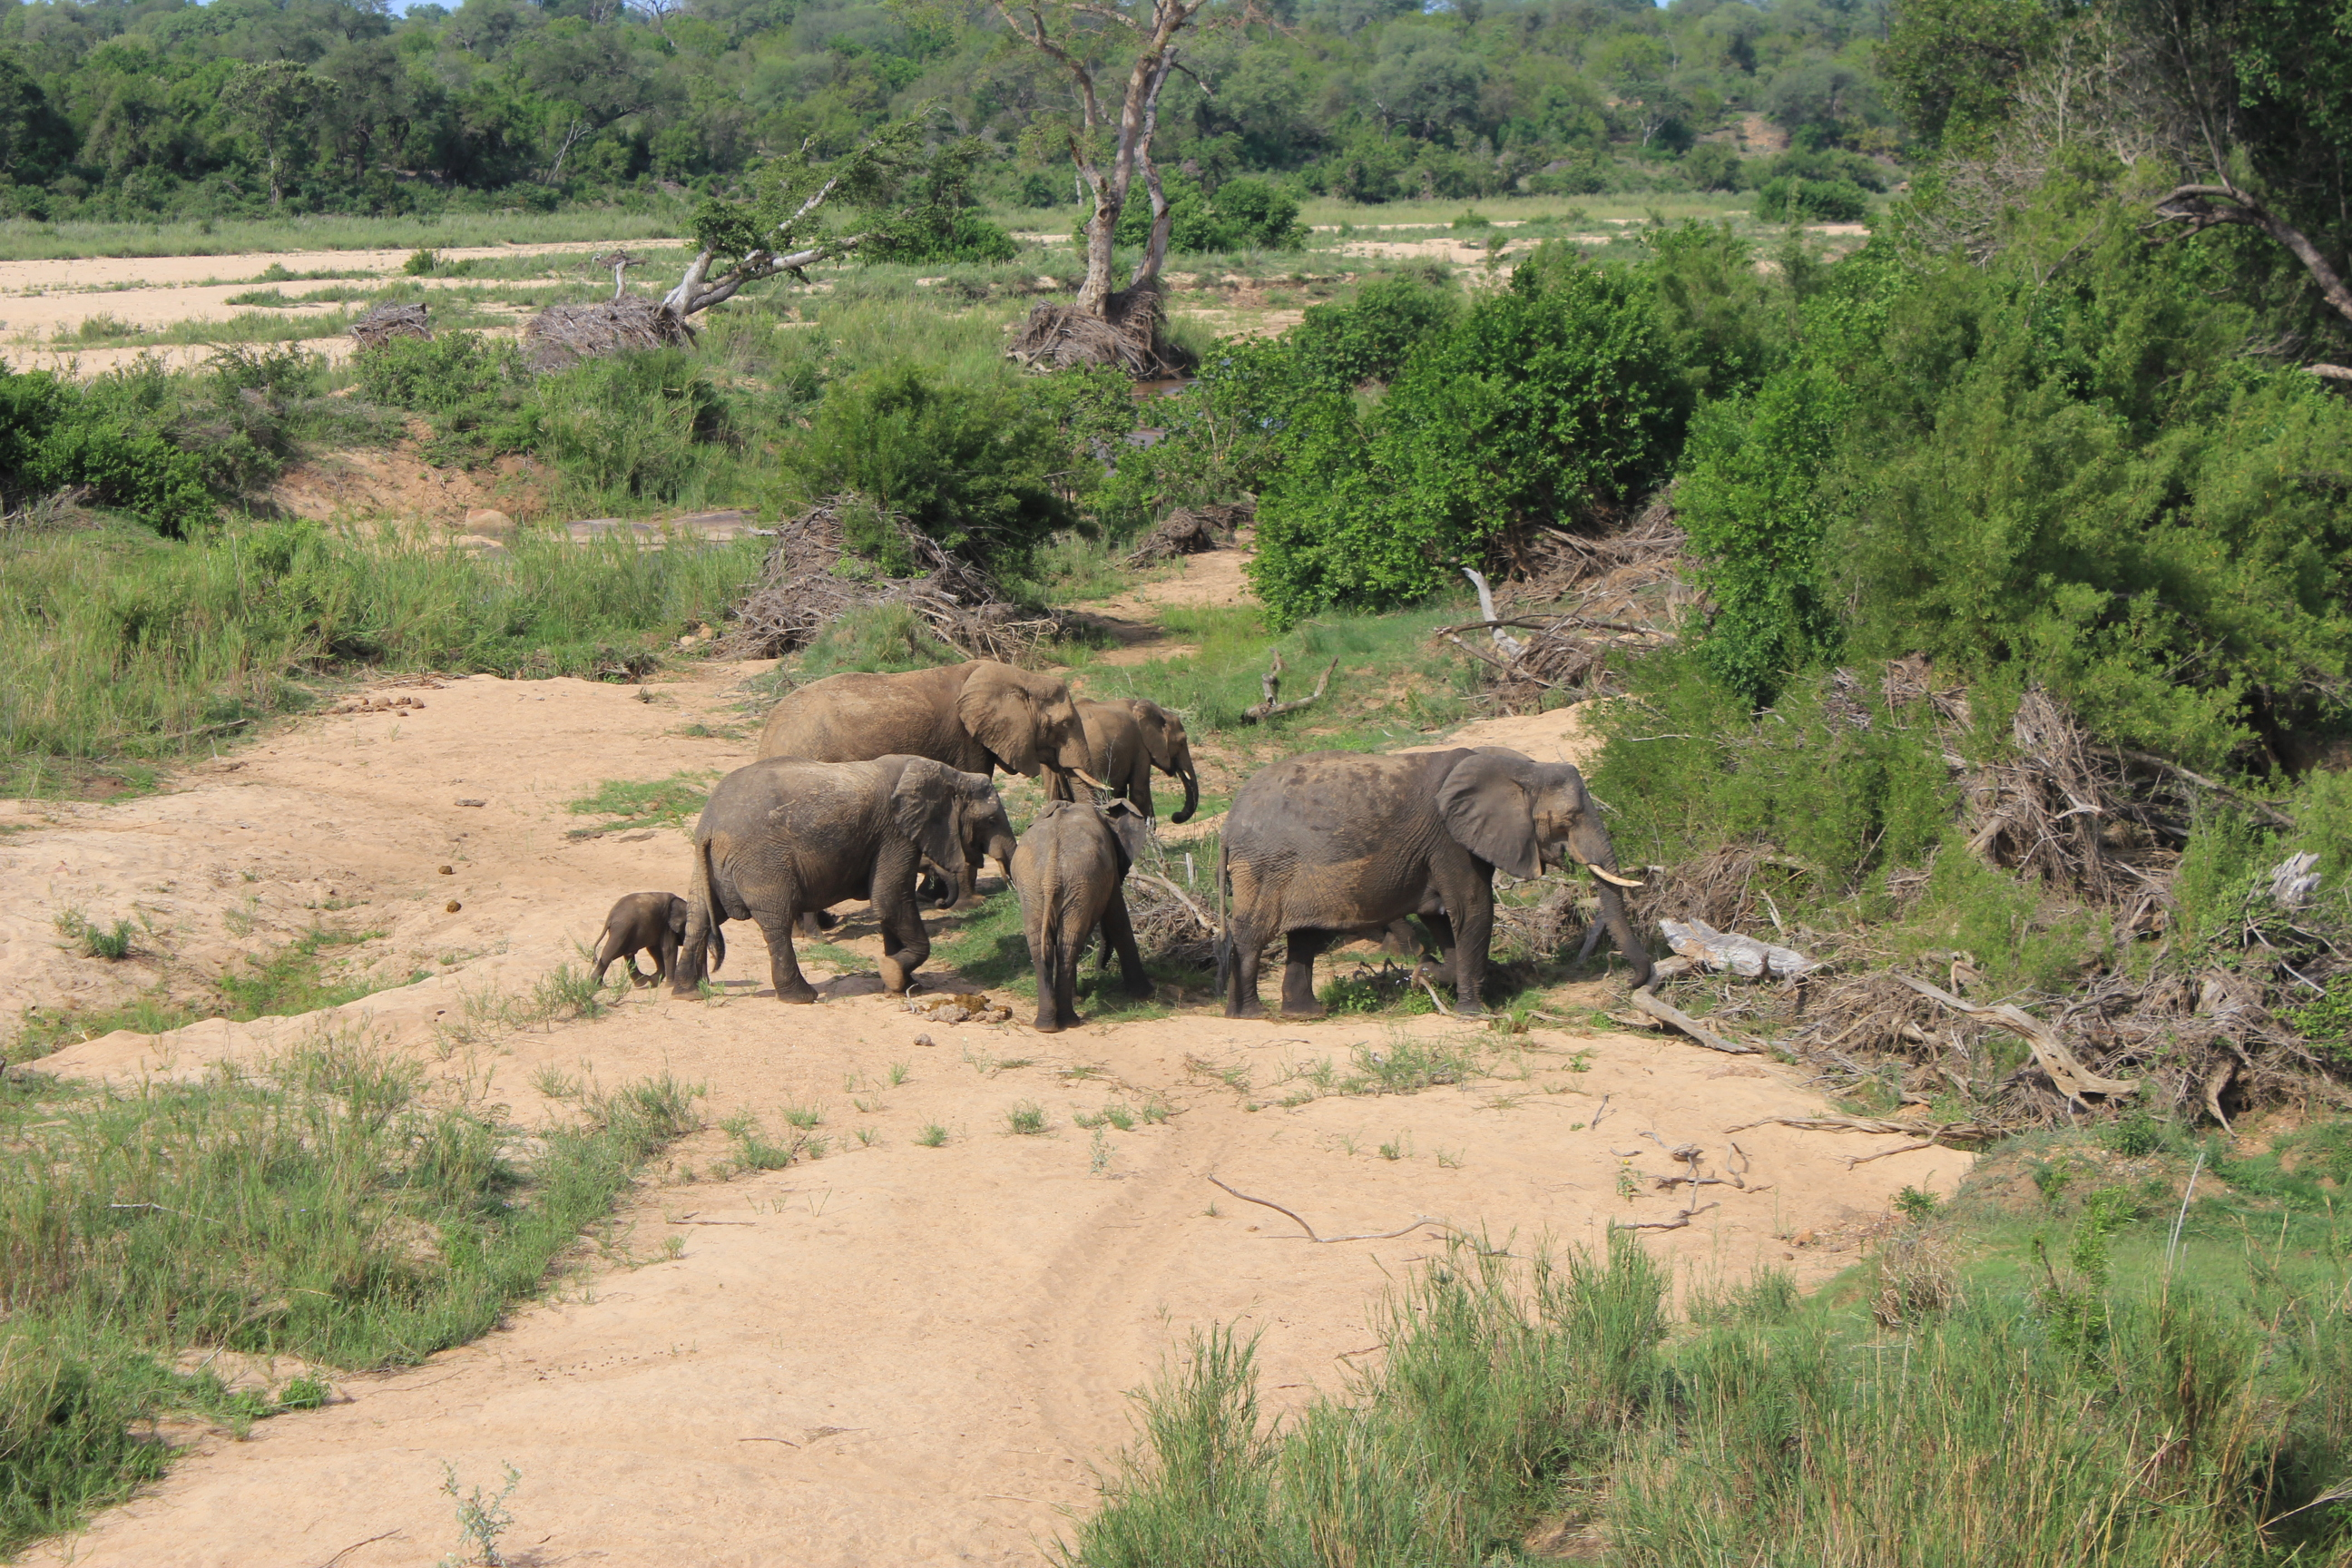 This wildlife spotting featured a family of elephants.